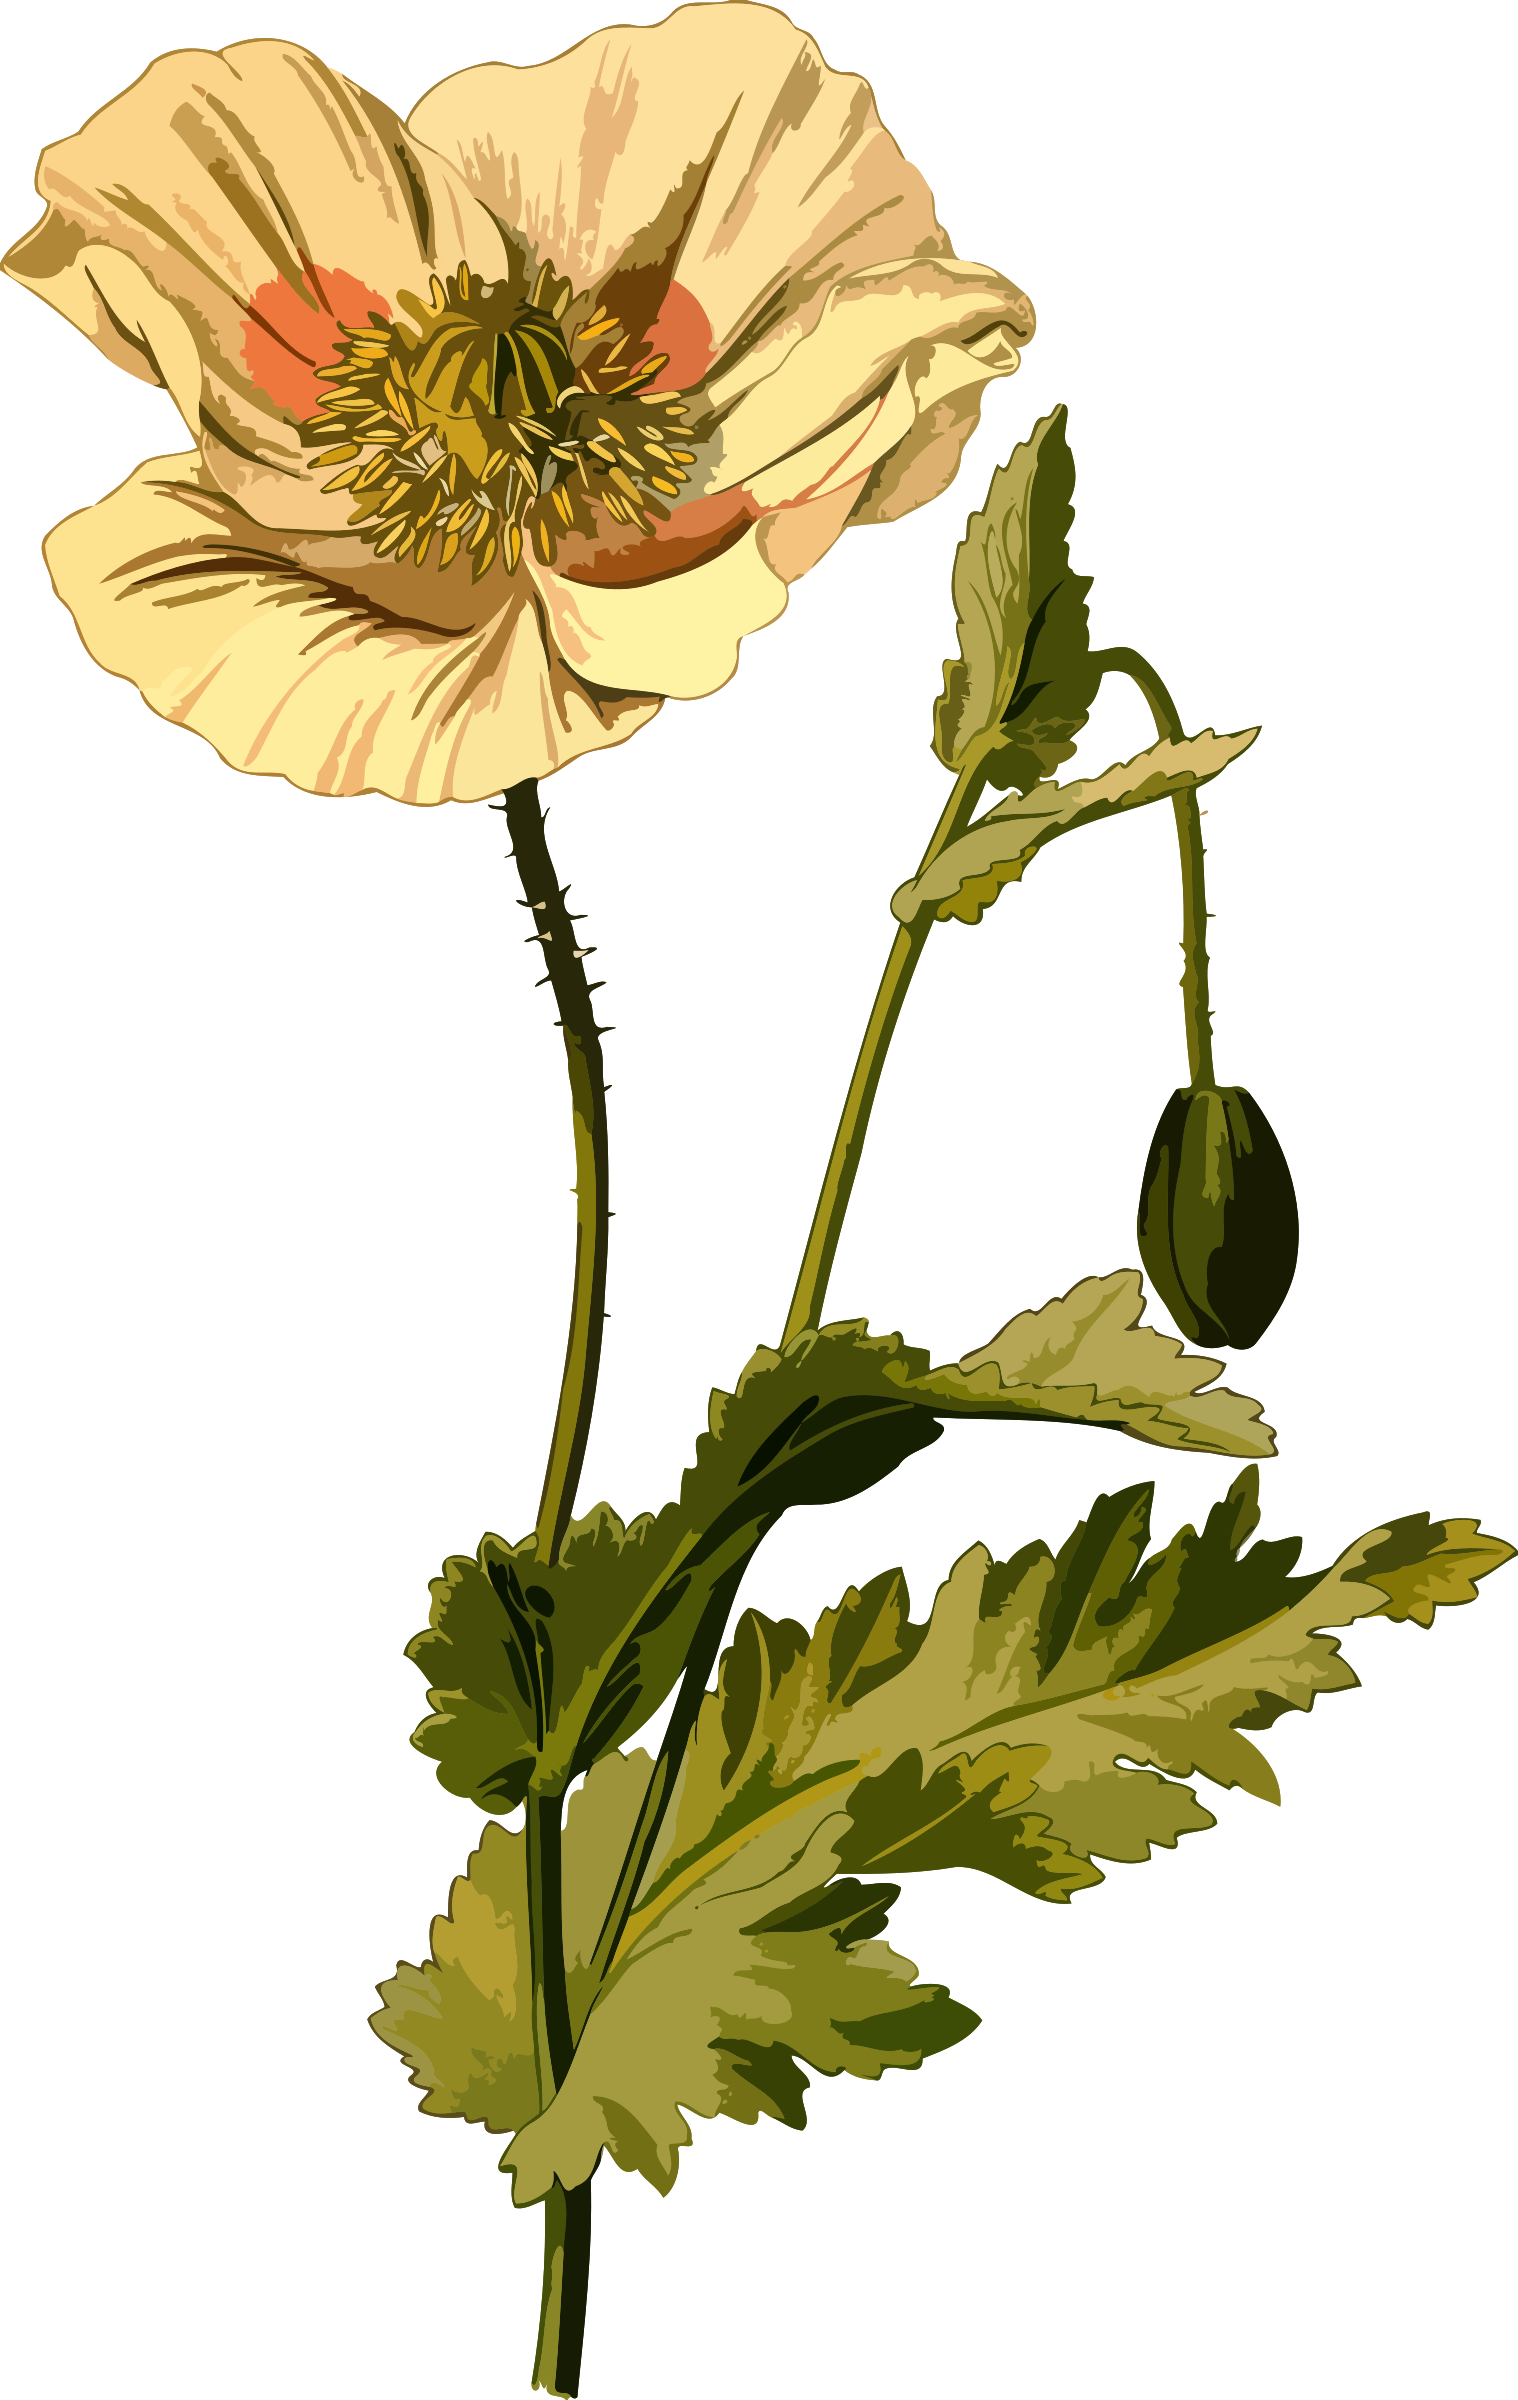 Opium poppy (low resolution) by Firkin